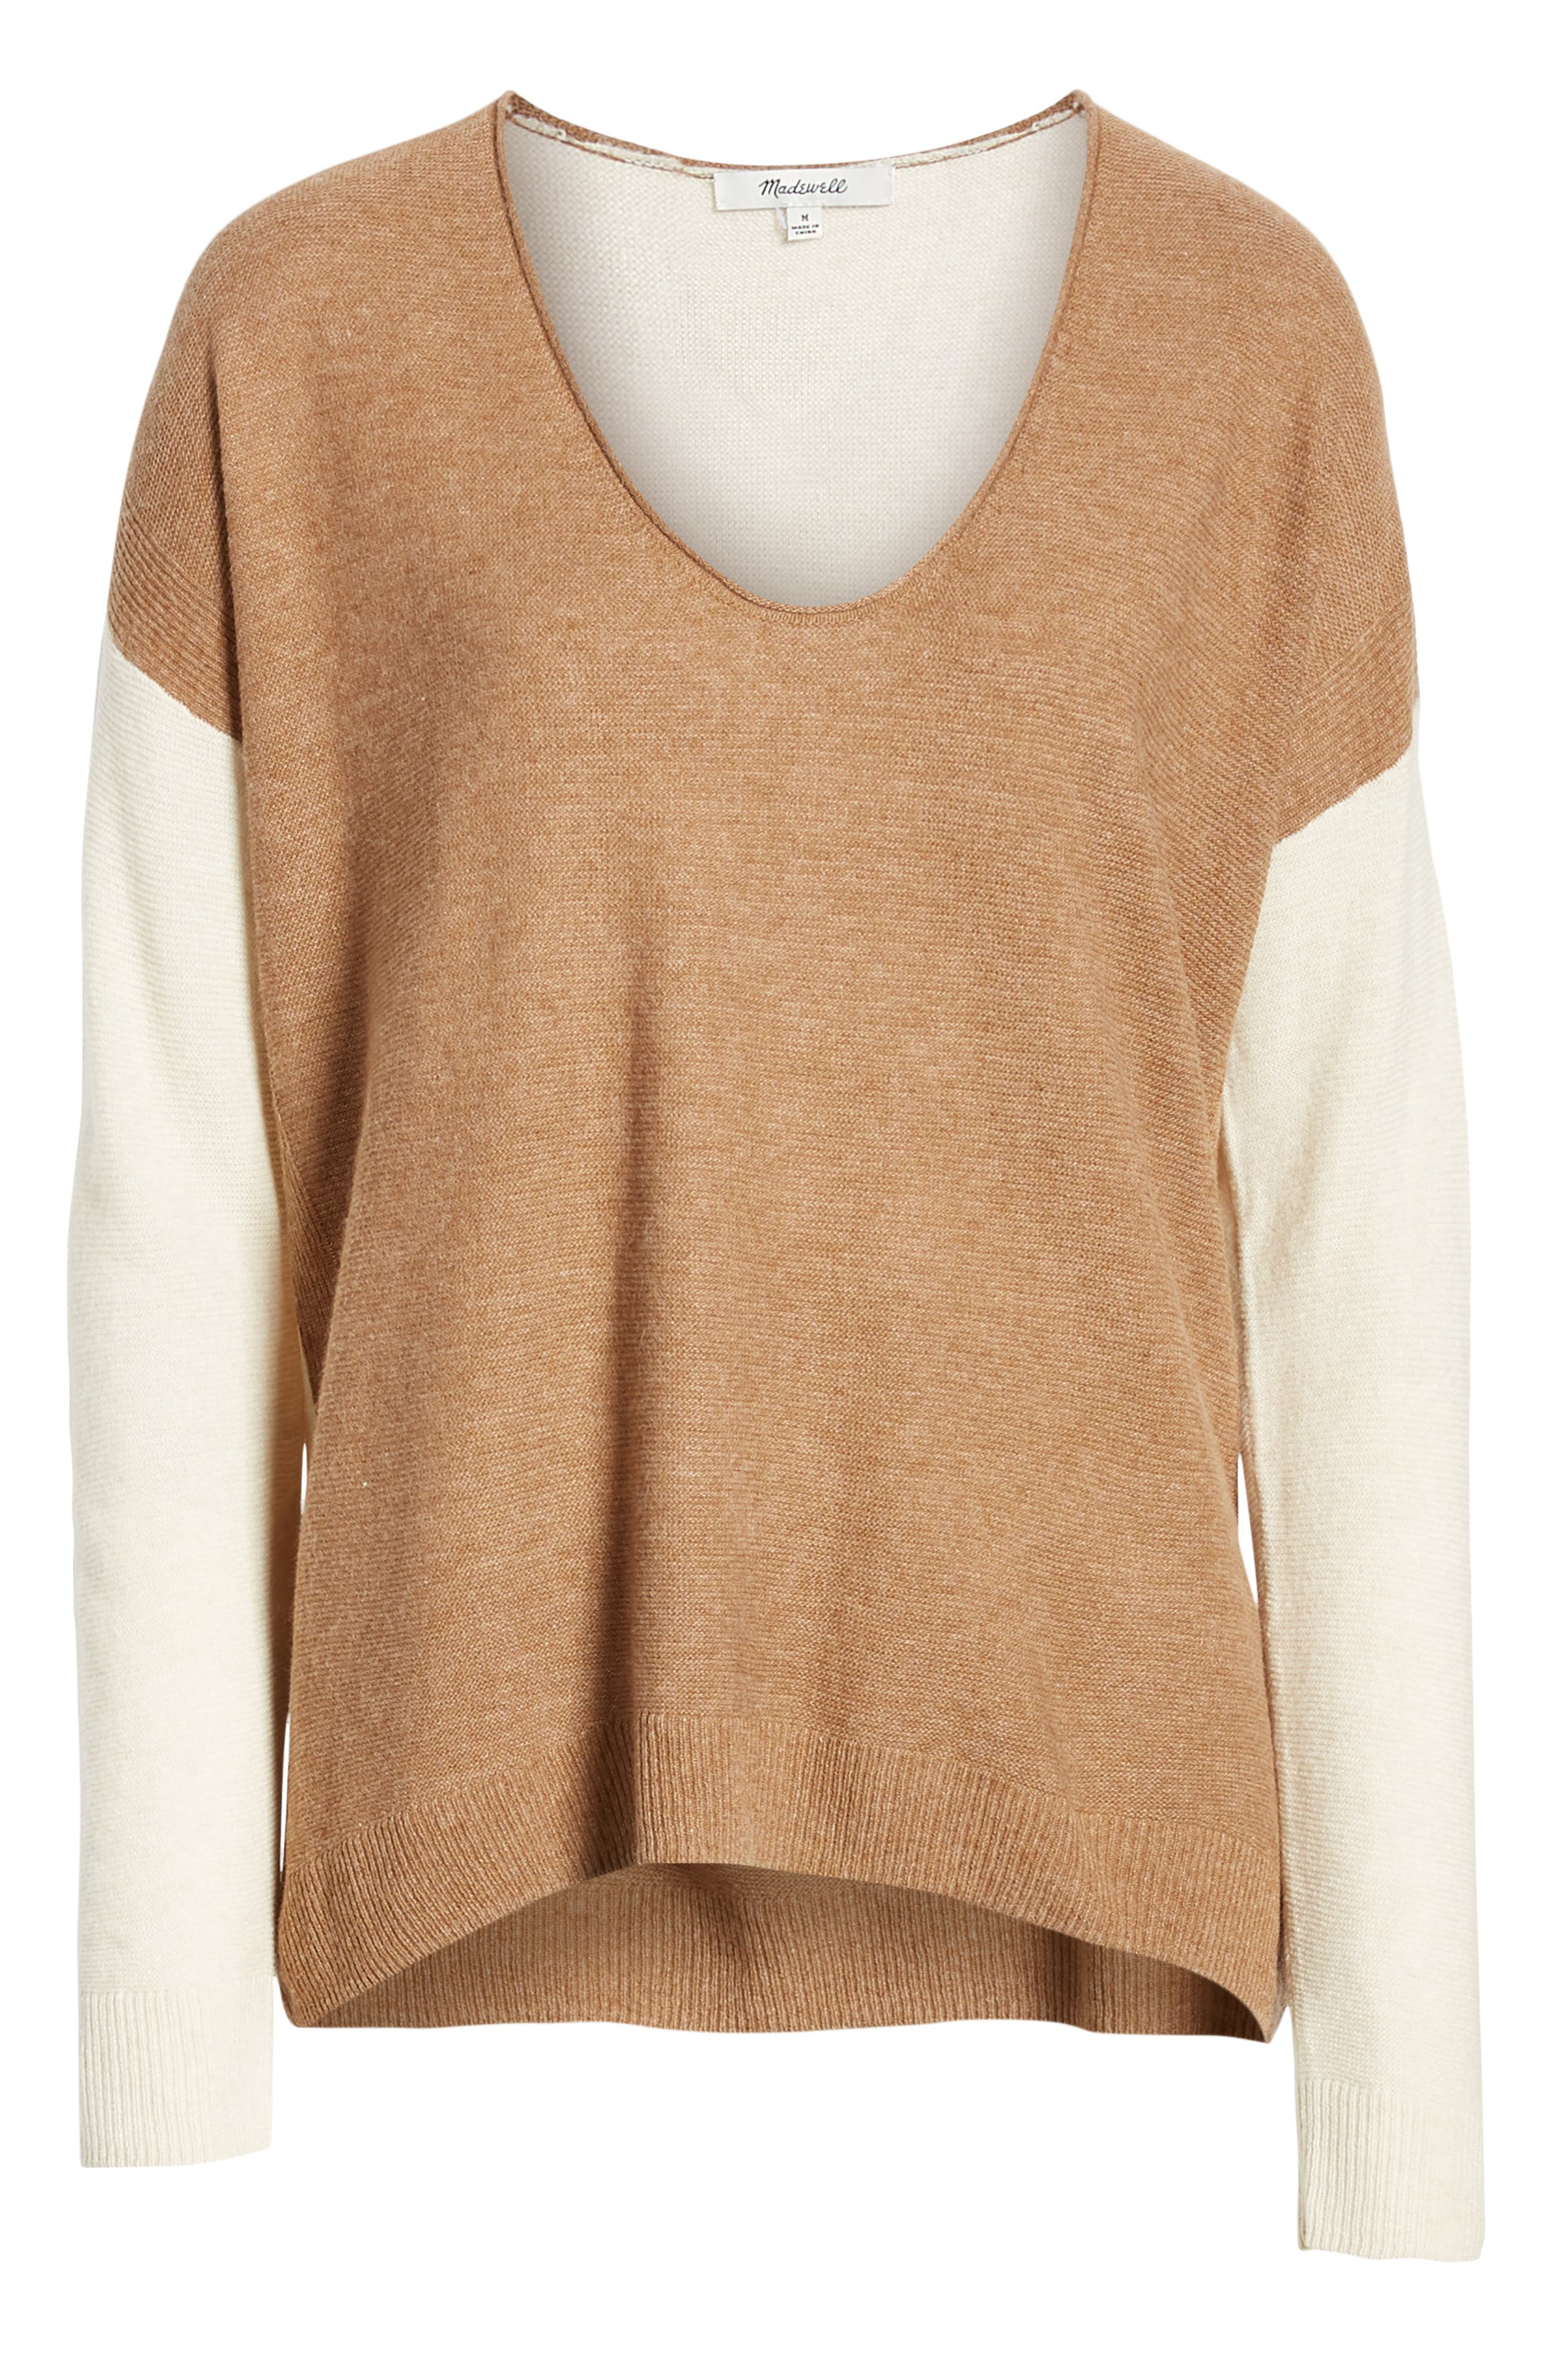 MADEWELL, Kimball Colorblock Sweater, Alternate thumbnail 6, color, 021